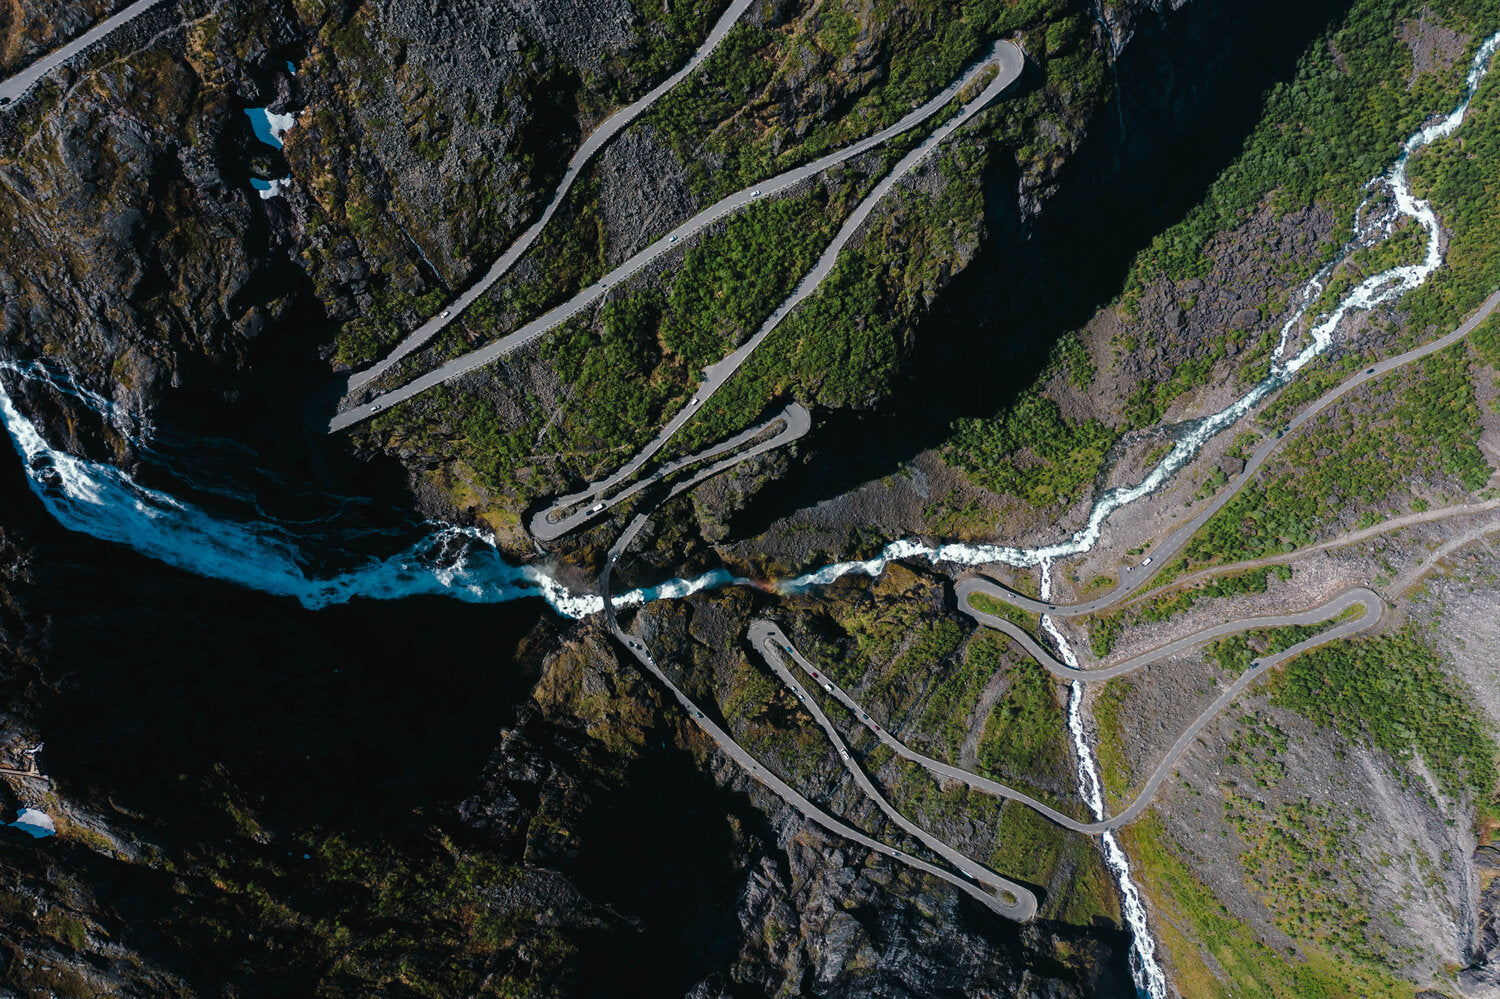 Trollstigen 11 hairpin bend, Norway